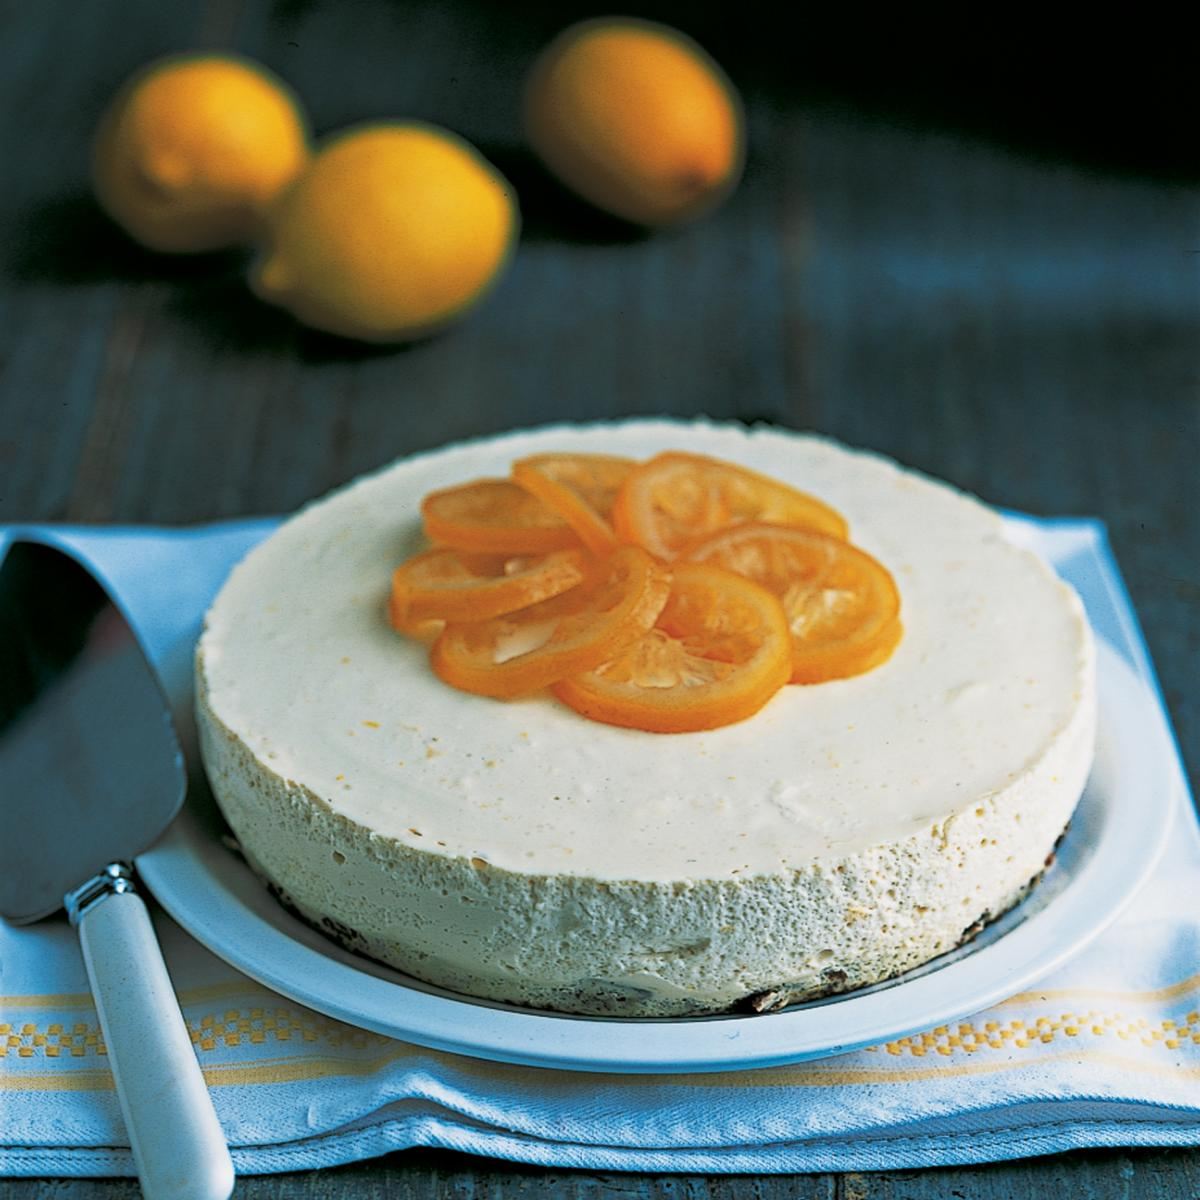 Puddings lemon ricotta cheesecake with a confit of lemons